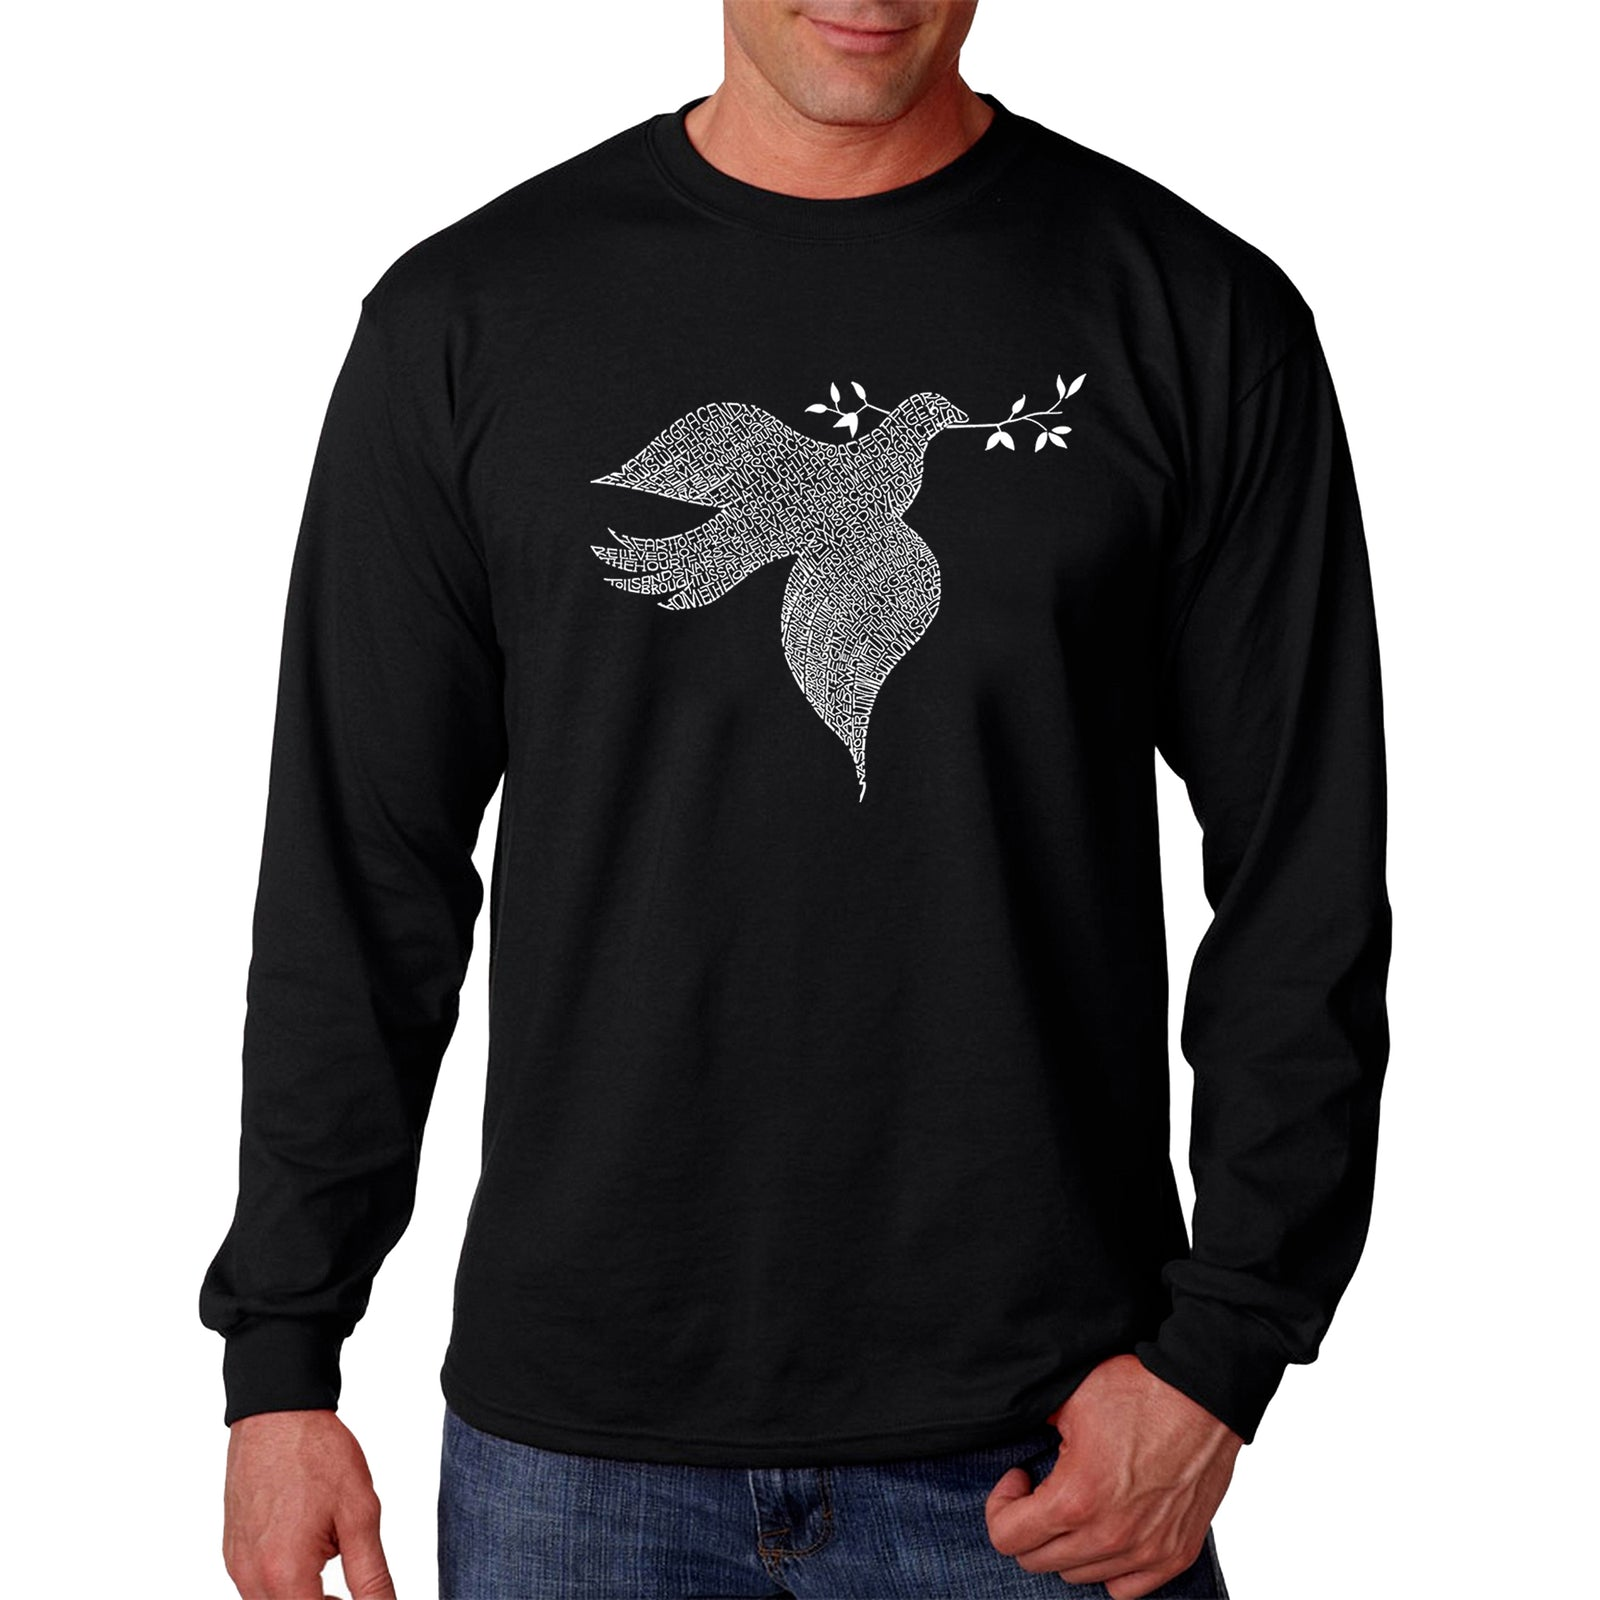 Los Angeles Pop Art Men's Long Sleeve T-shirt - Dove